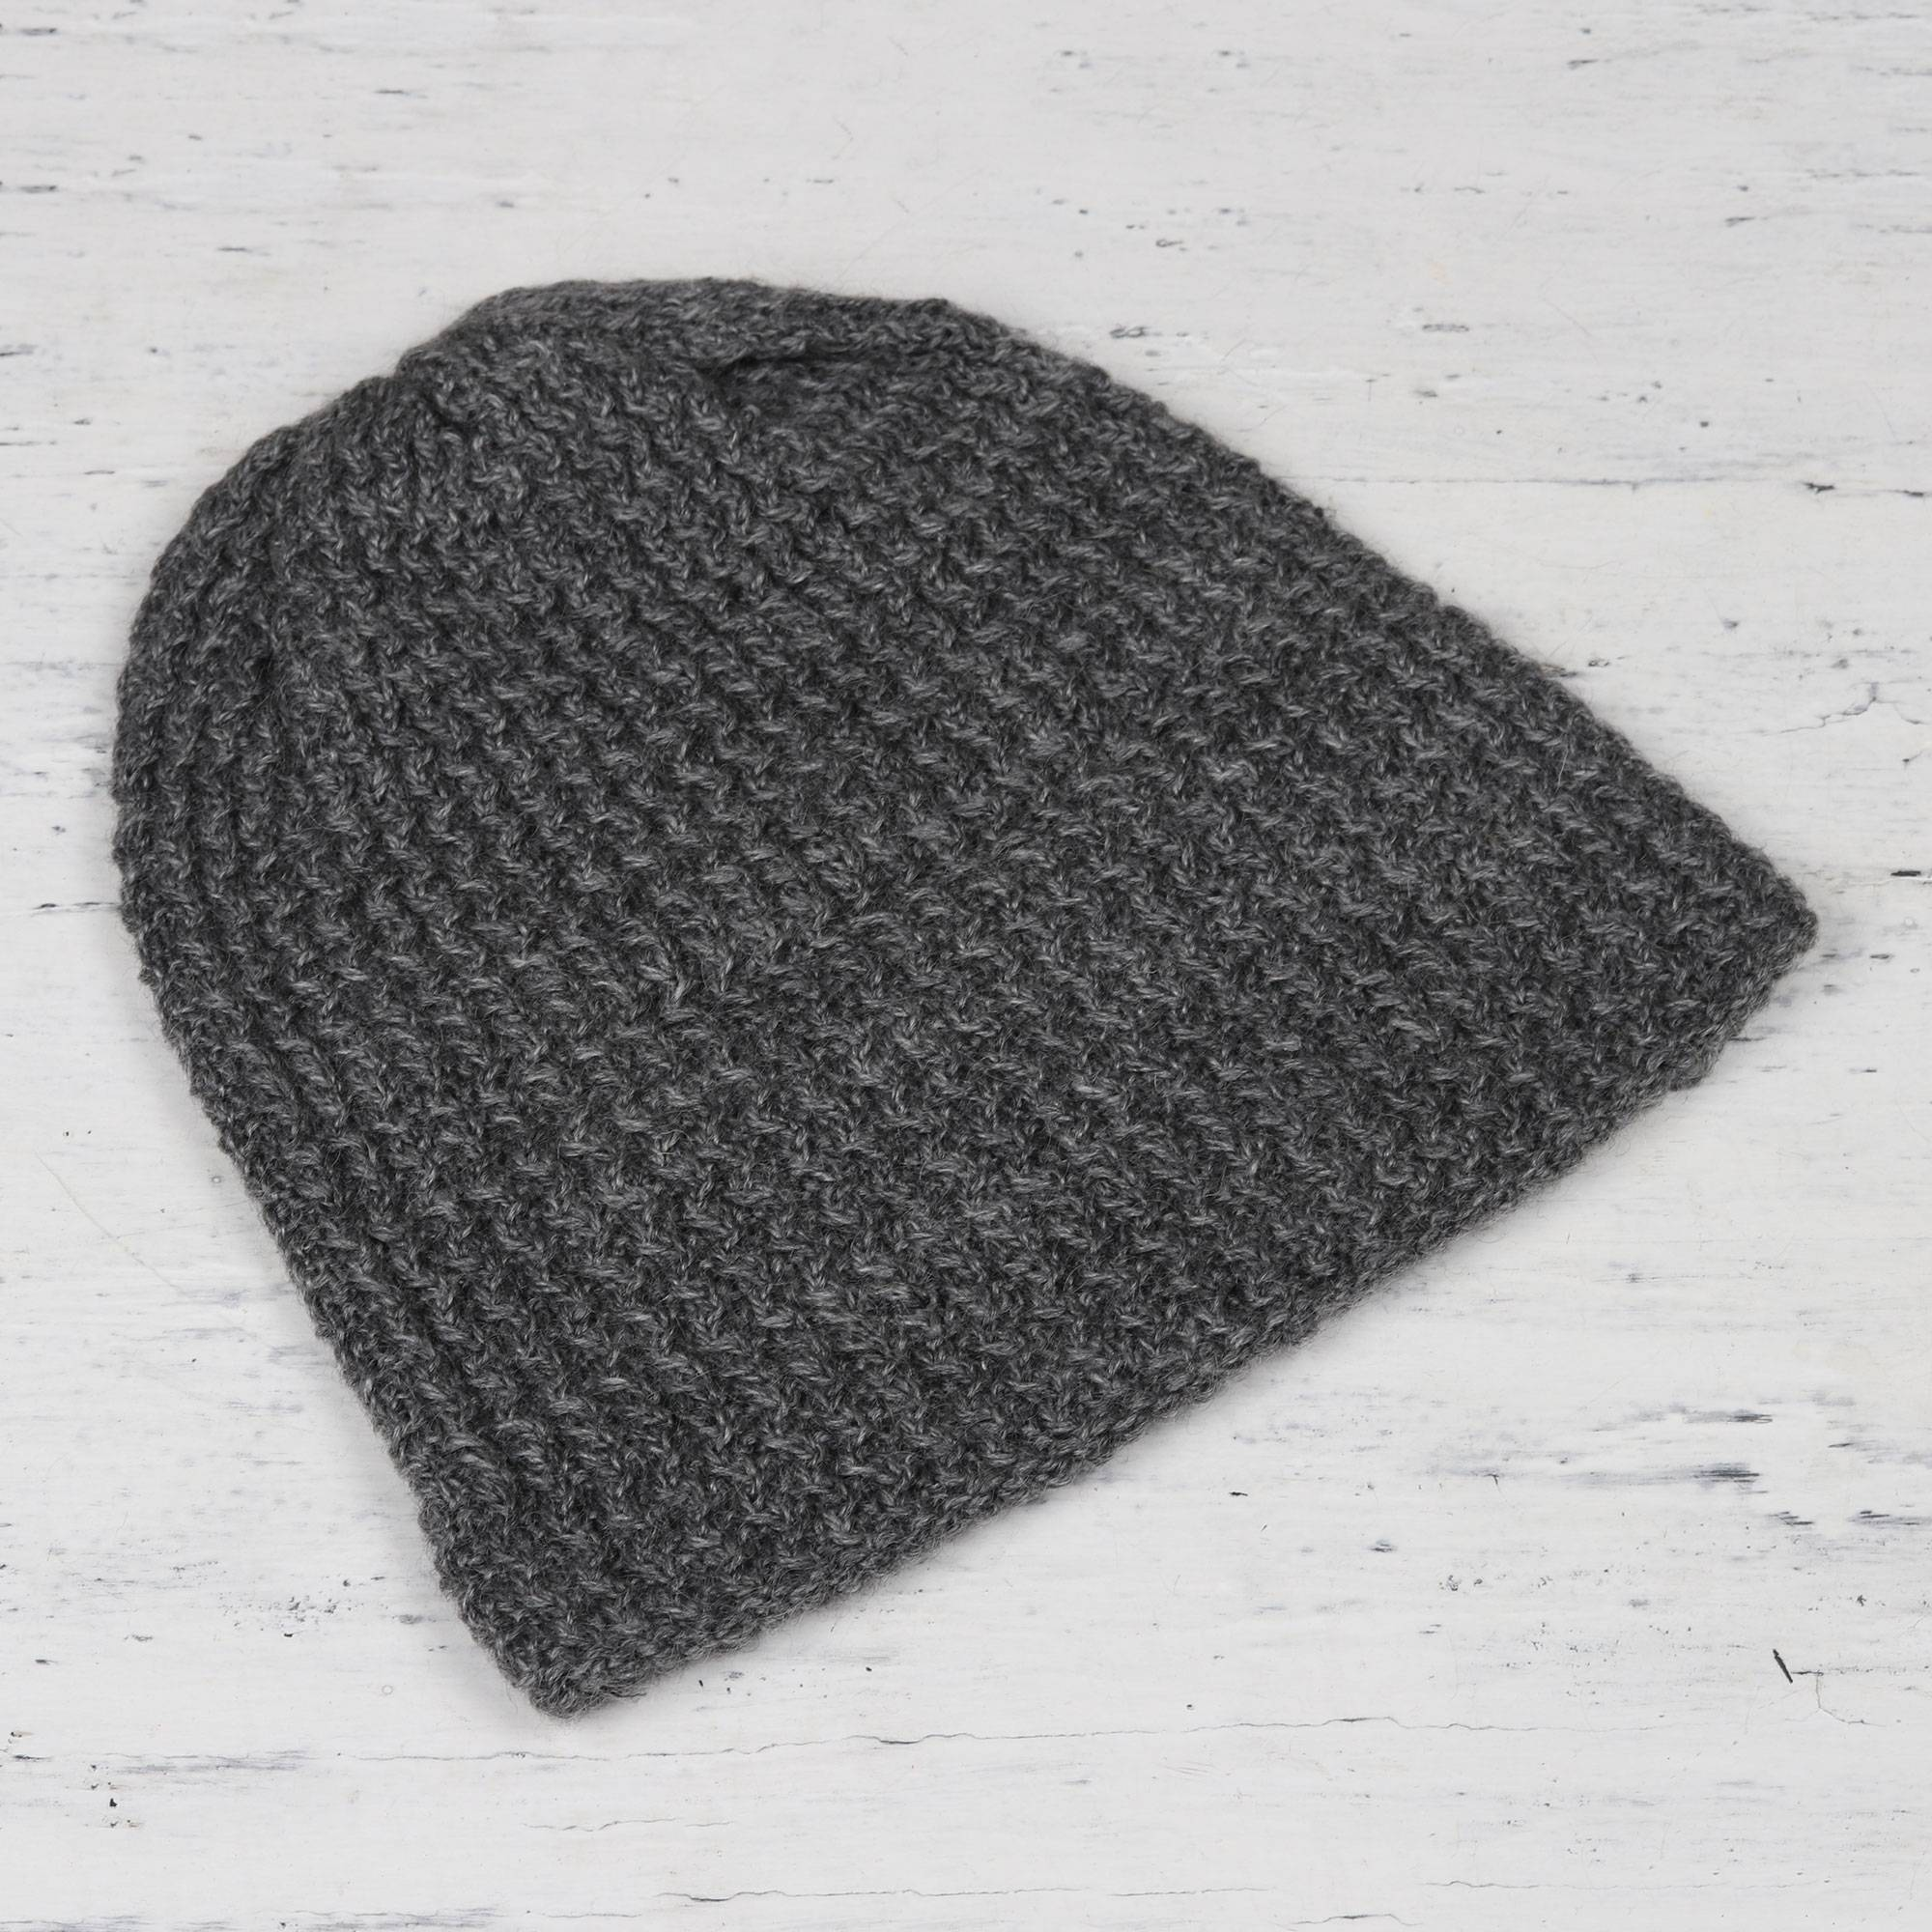 Graphite Hand-Knit Zigzag Ribbed Wool Blend Hat from India ... dce6a06bf40